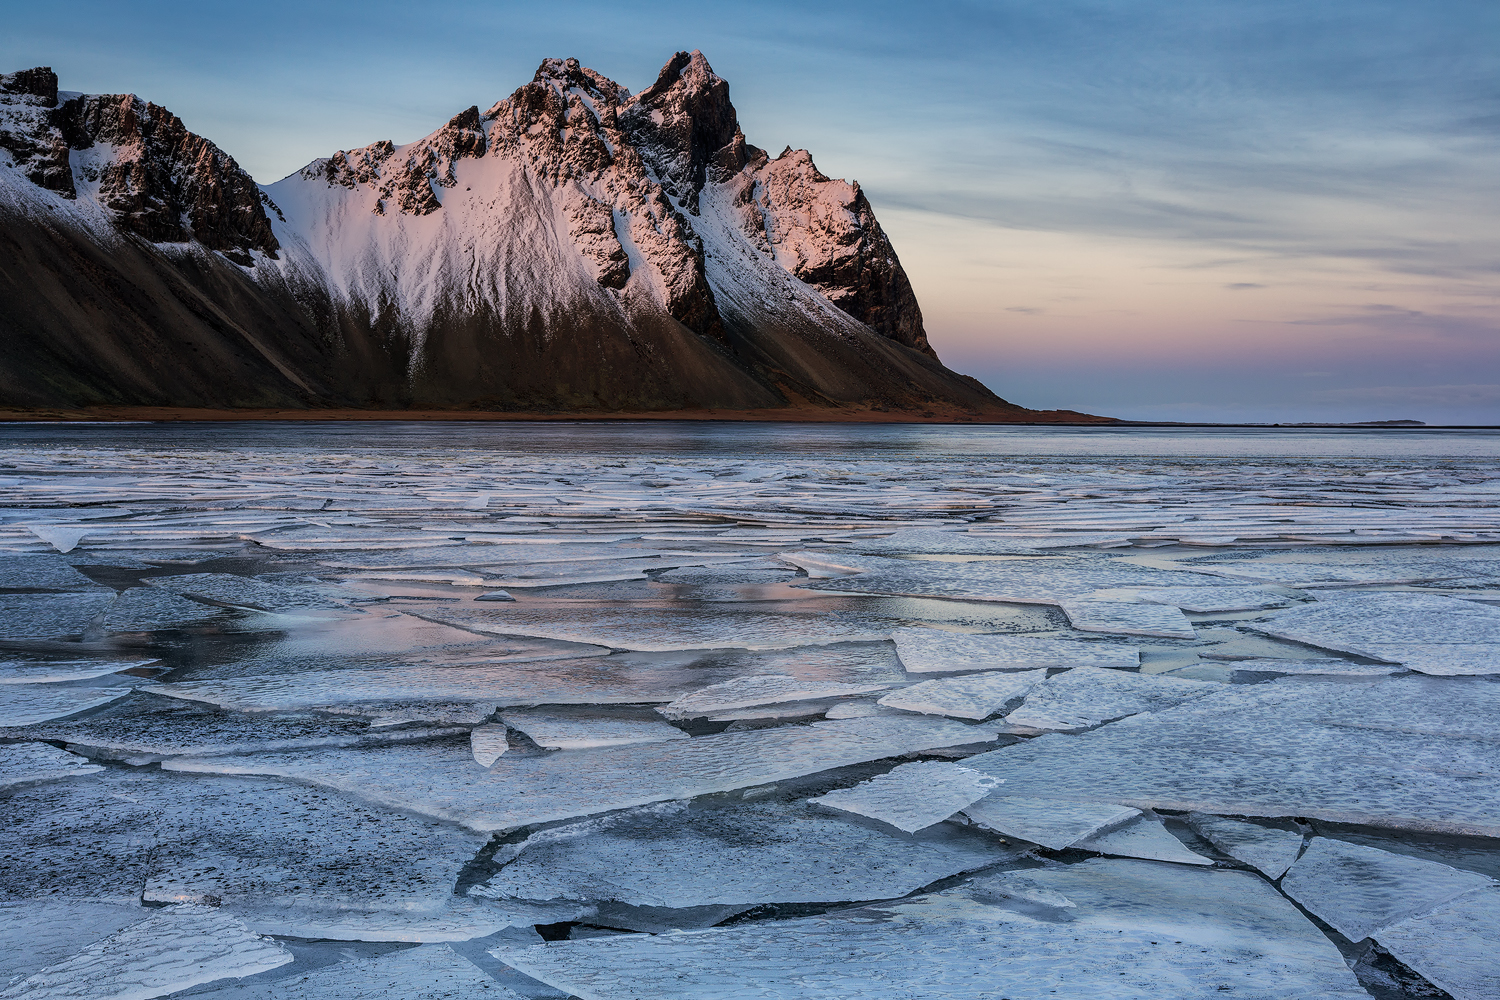 Vestrahorn mountain in its icy ominous glory.